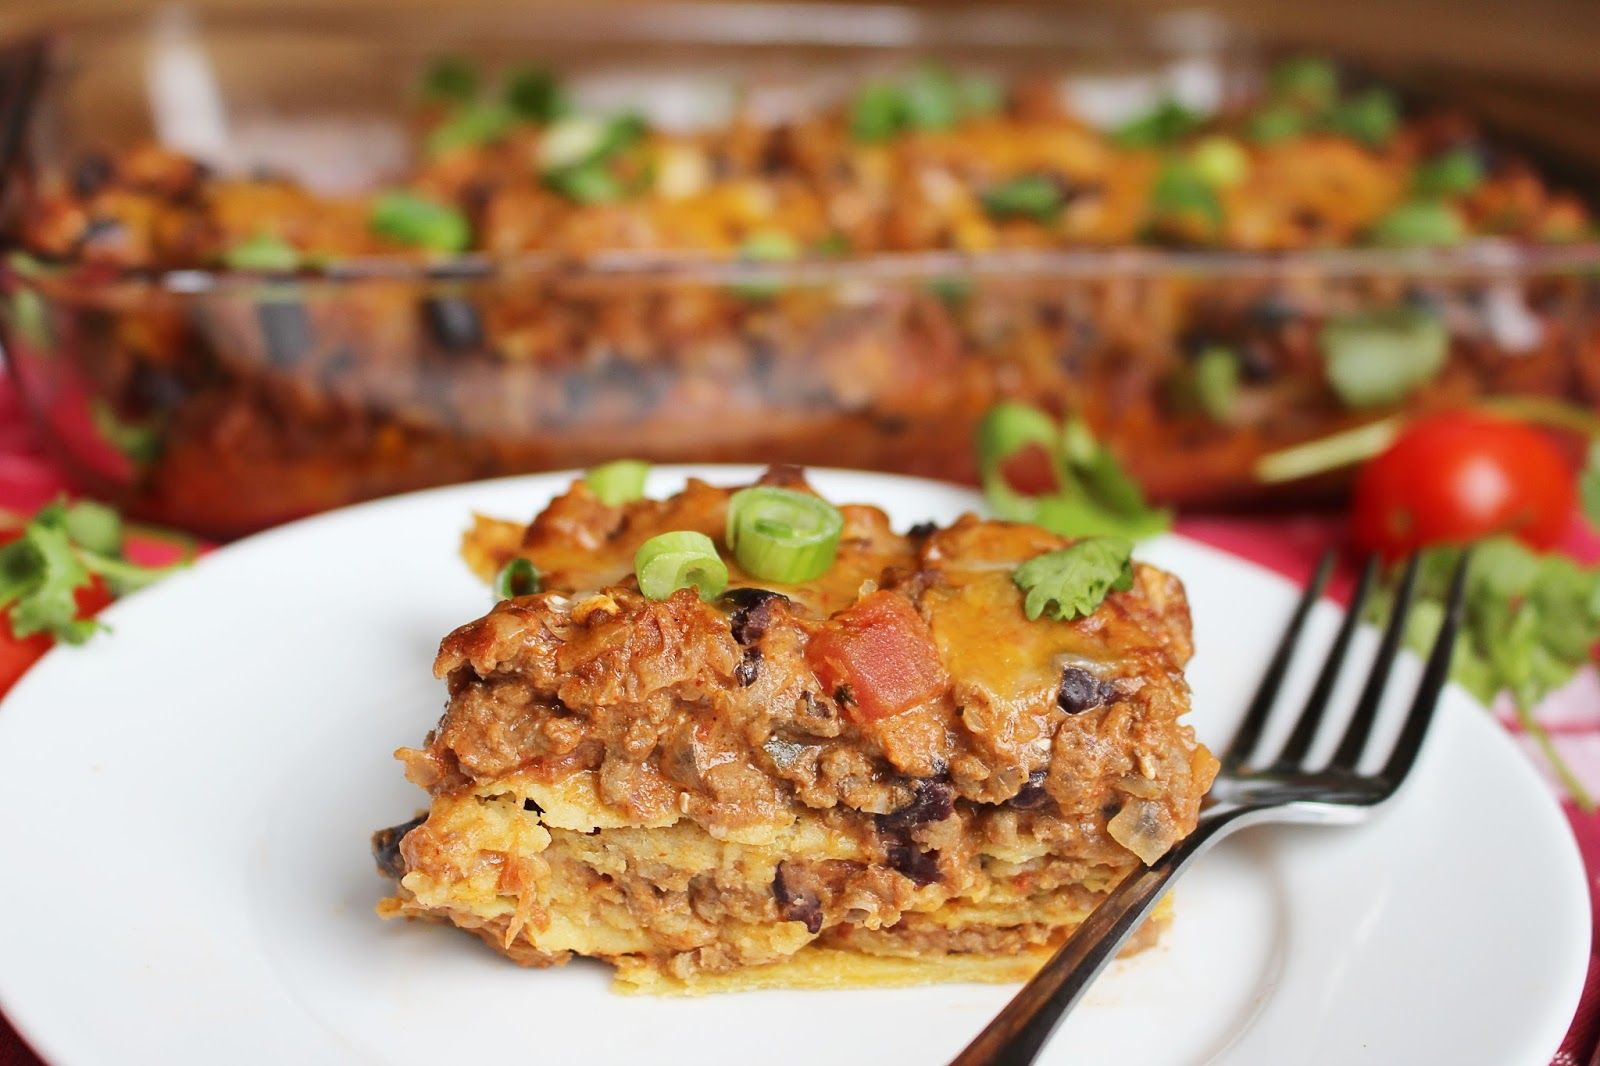 Taco lasagna from Kylee's Kitchen combines the flavor of tacos with the comfort of a casserole